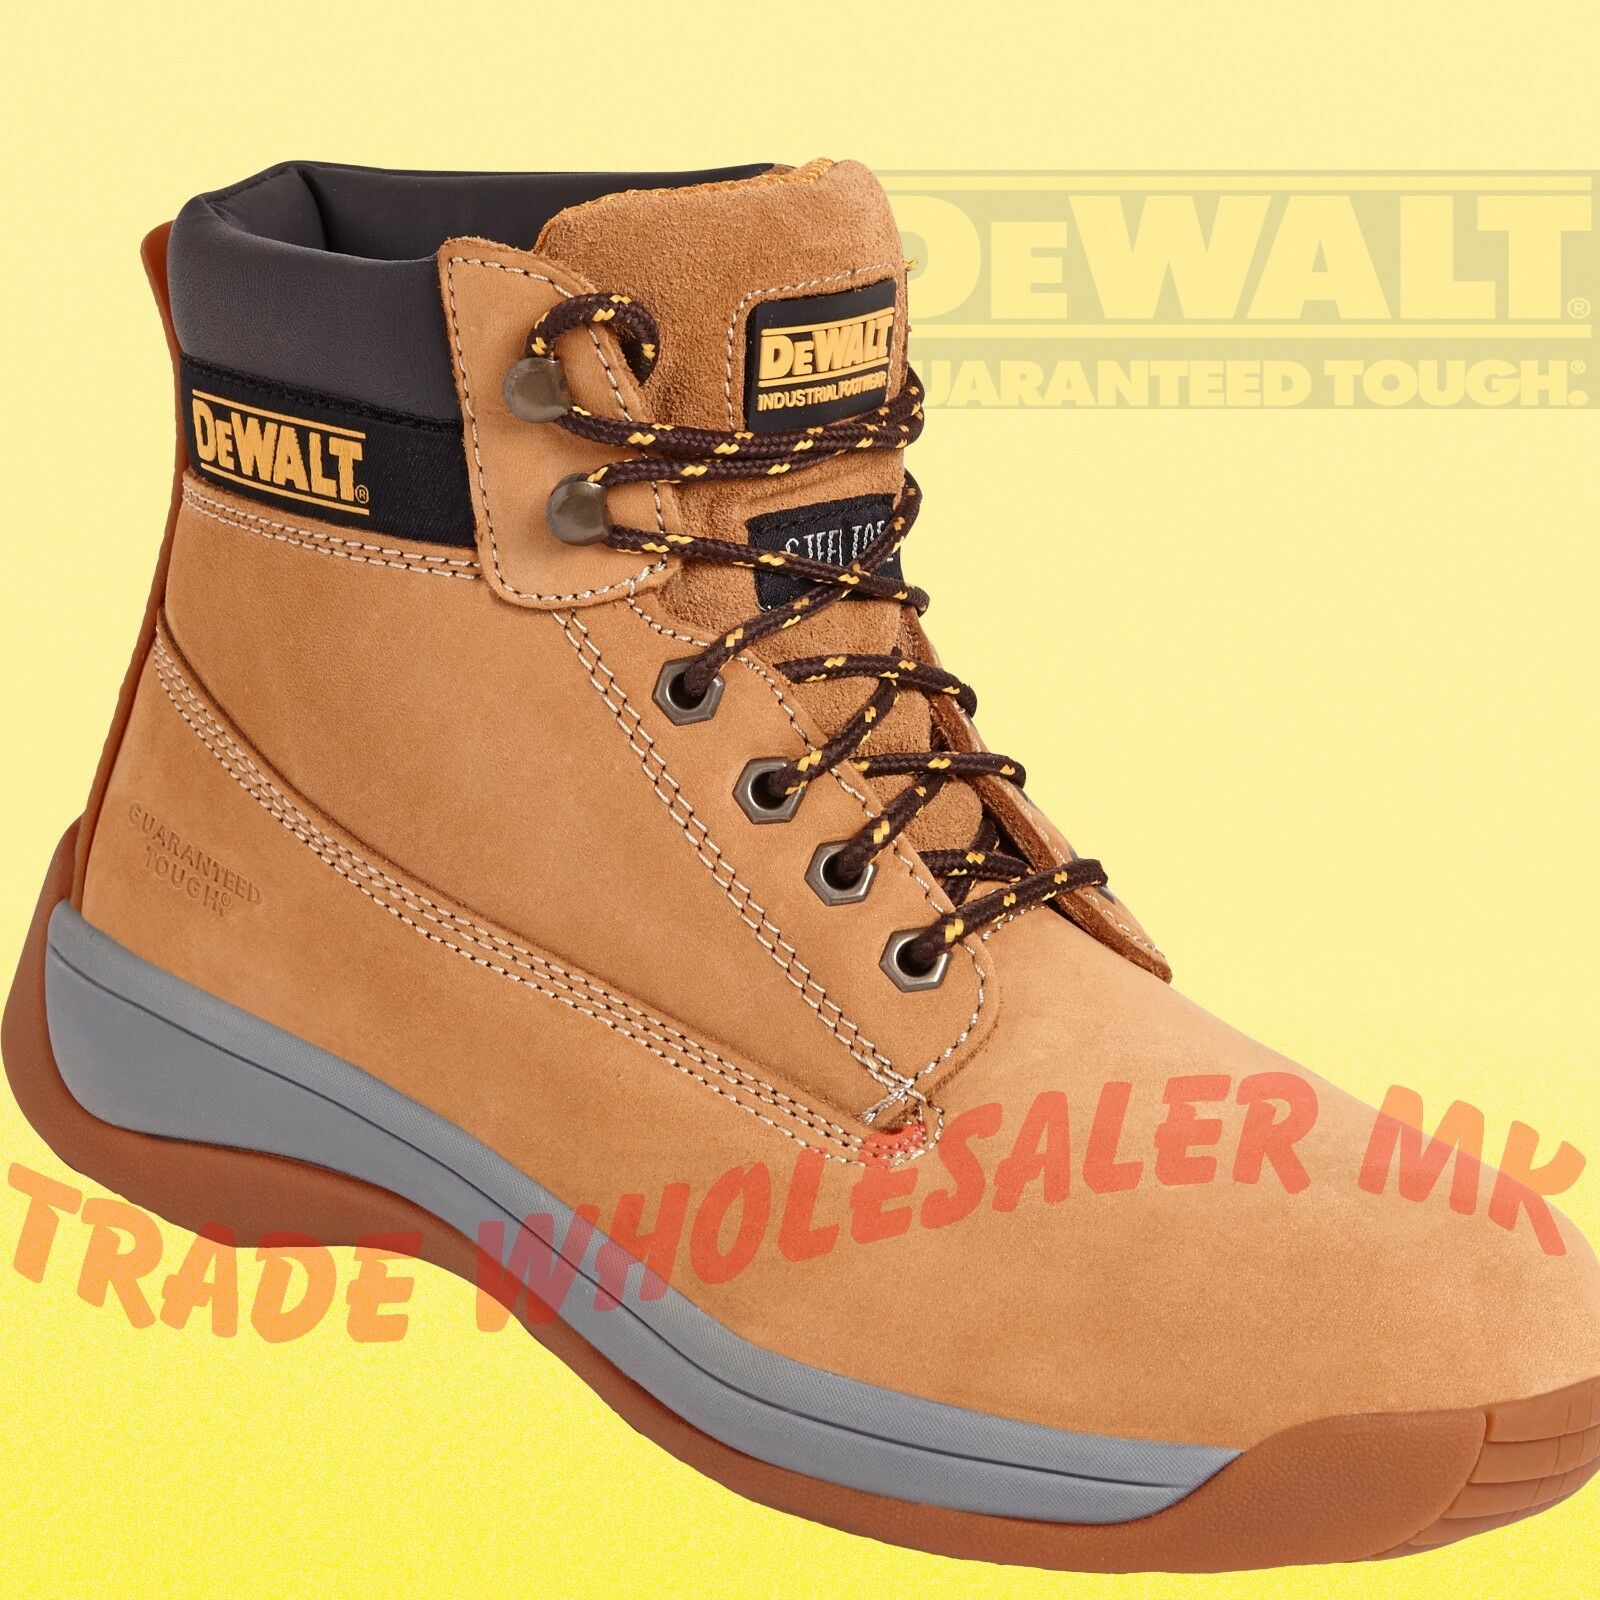 DeWalt Apprentice Stiefel Honey Safety Stiefel work Stiefel Apprentice steel toecap UK Größes 6-11 af6c0c